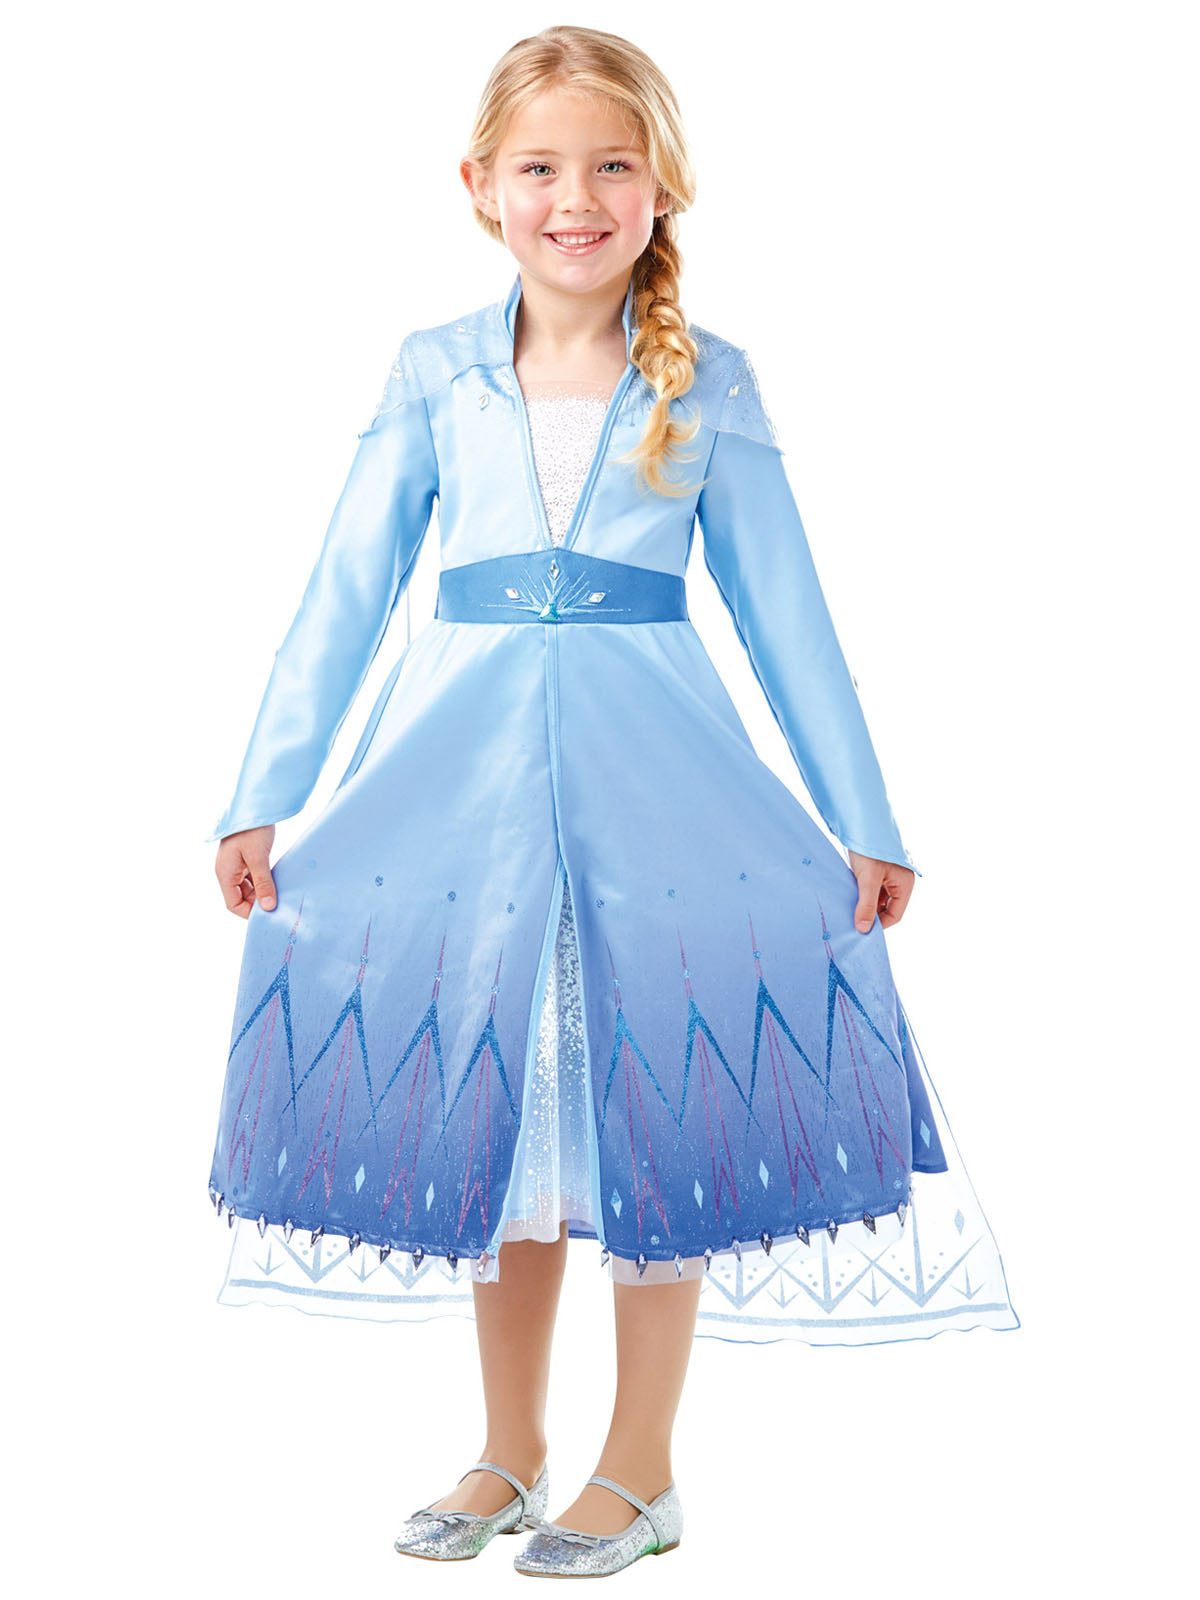 Elsa Frozen 2 Premium Child Costume - Buy Online Only